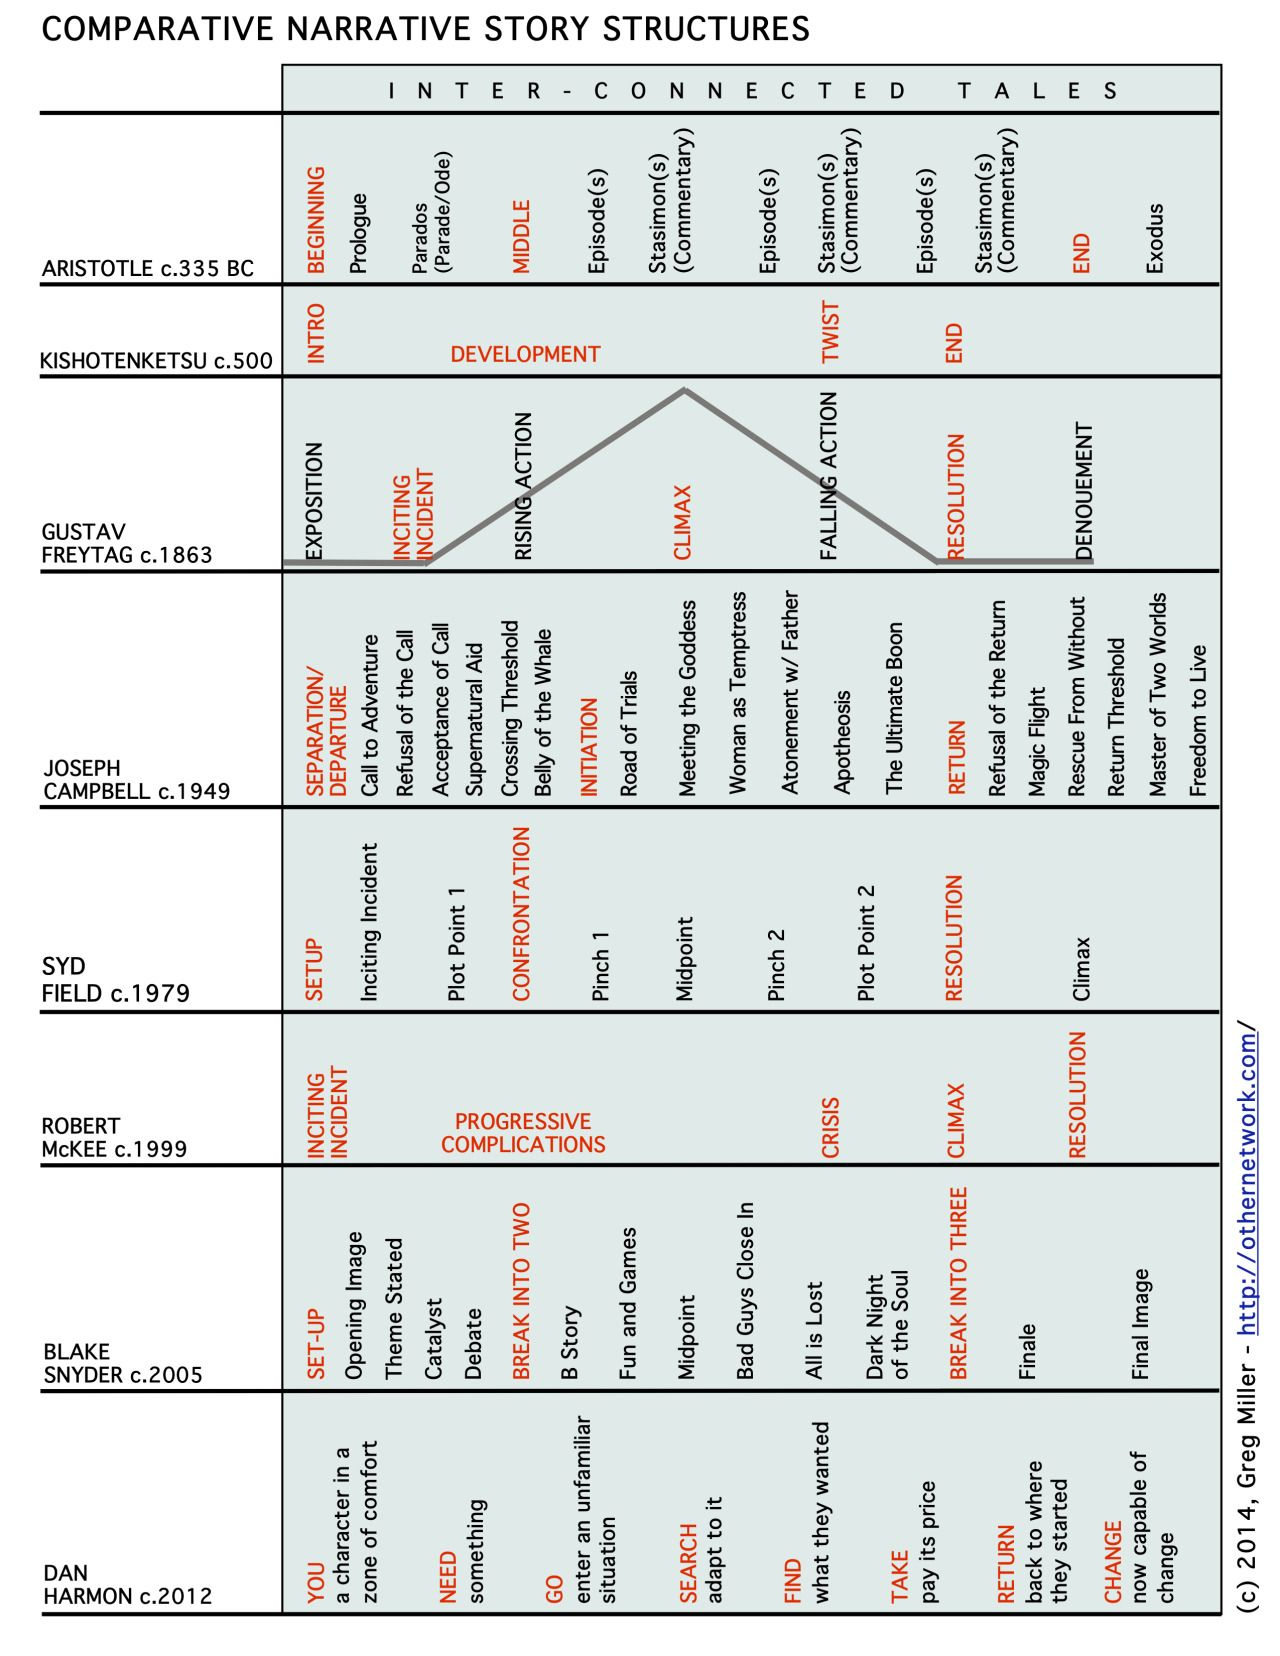 Writerofscreen Comparison Of Narrative Story Structures